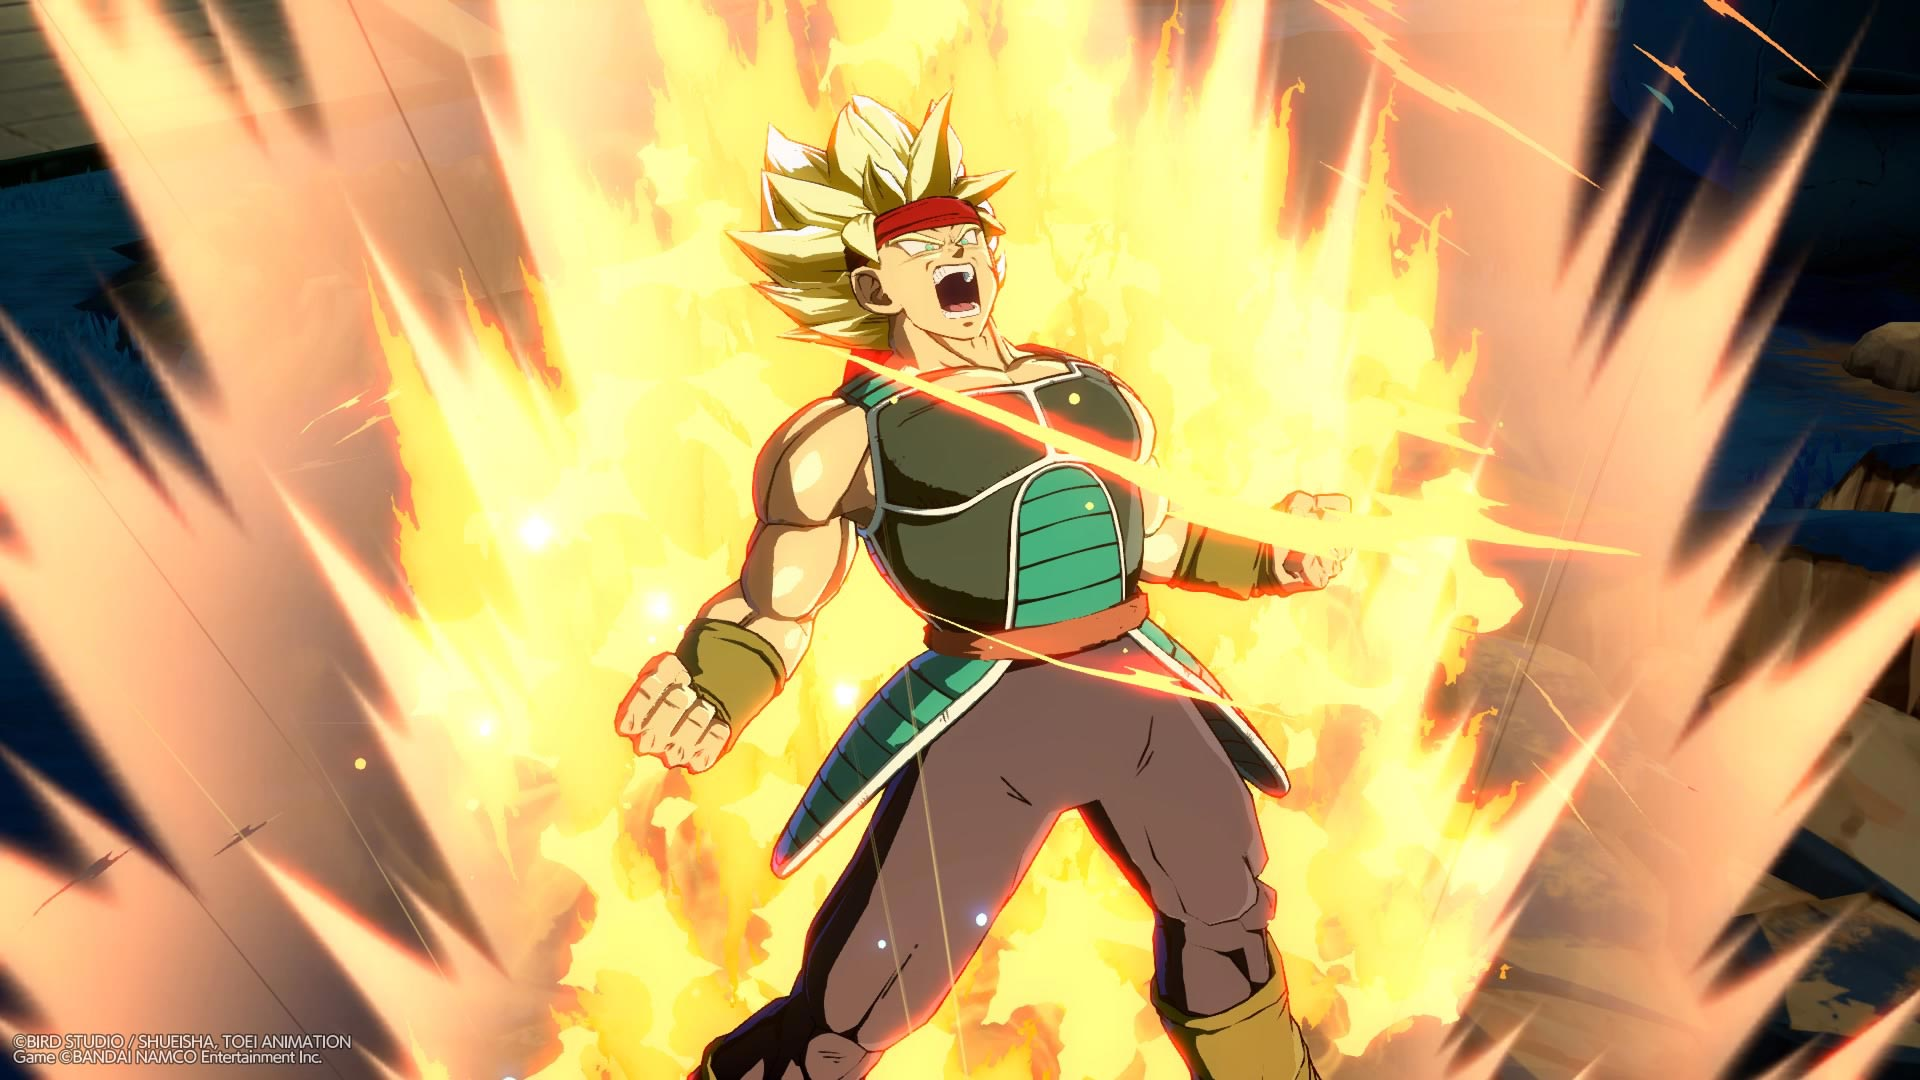 Broly and Bardock screenshots in Dragon Ball FighterZ 6 out of 12 image gallery